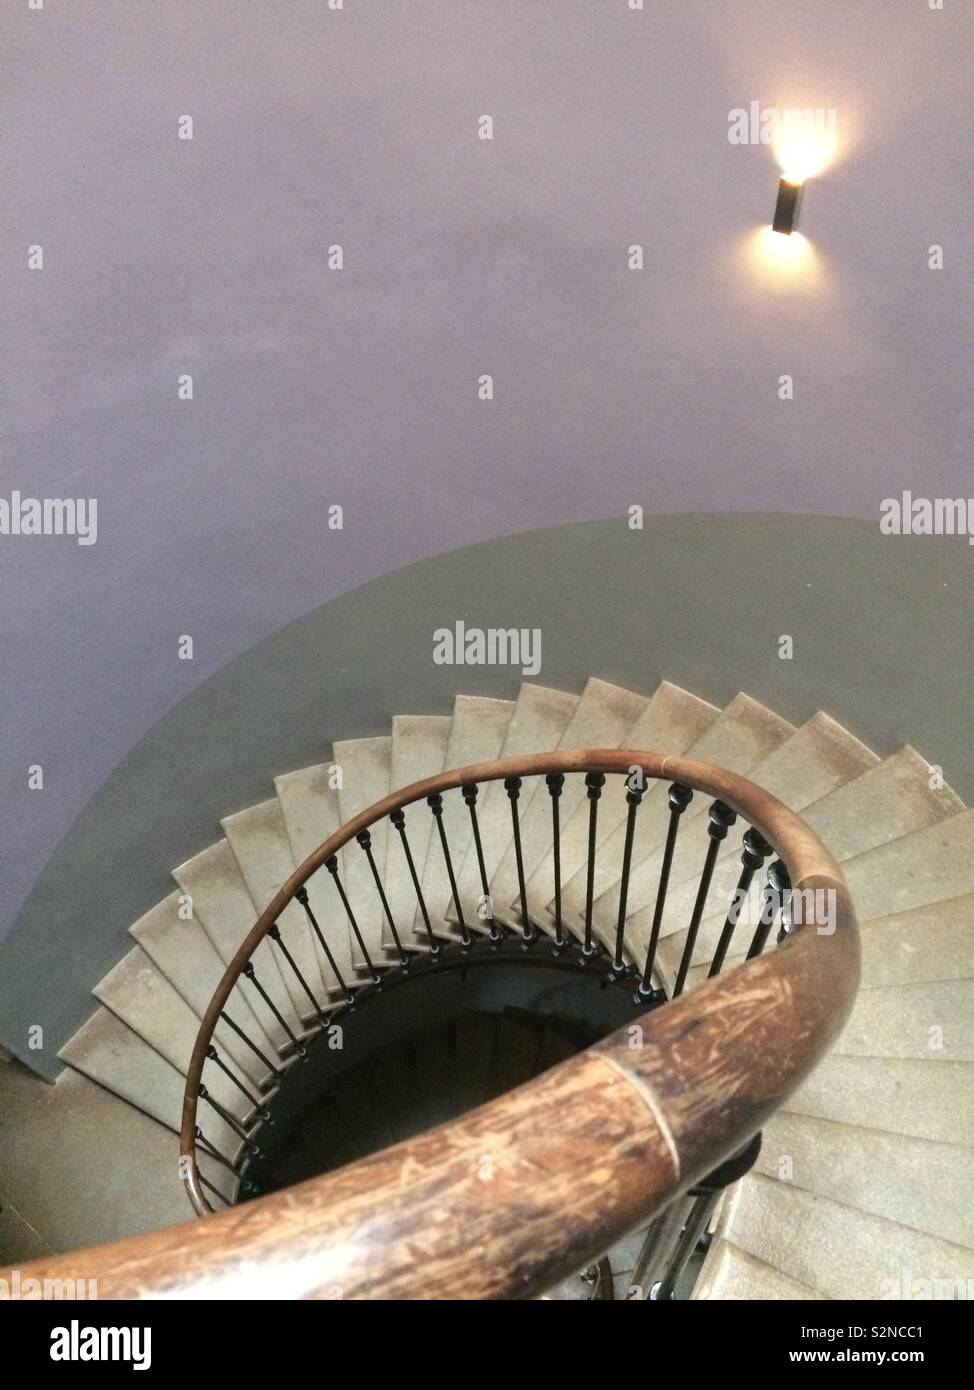 The staircase of an old French château with walls painted in two tones of grey - Stock Image